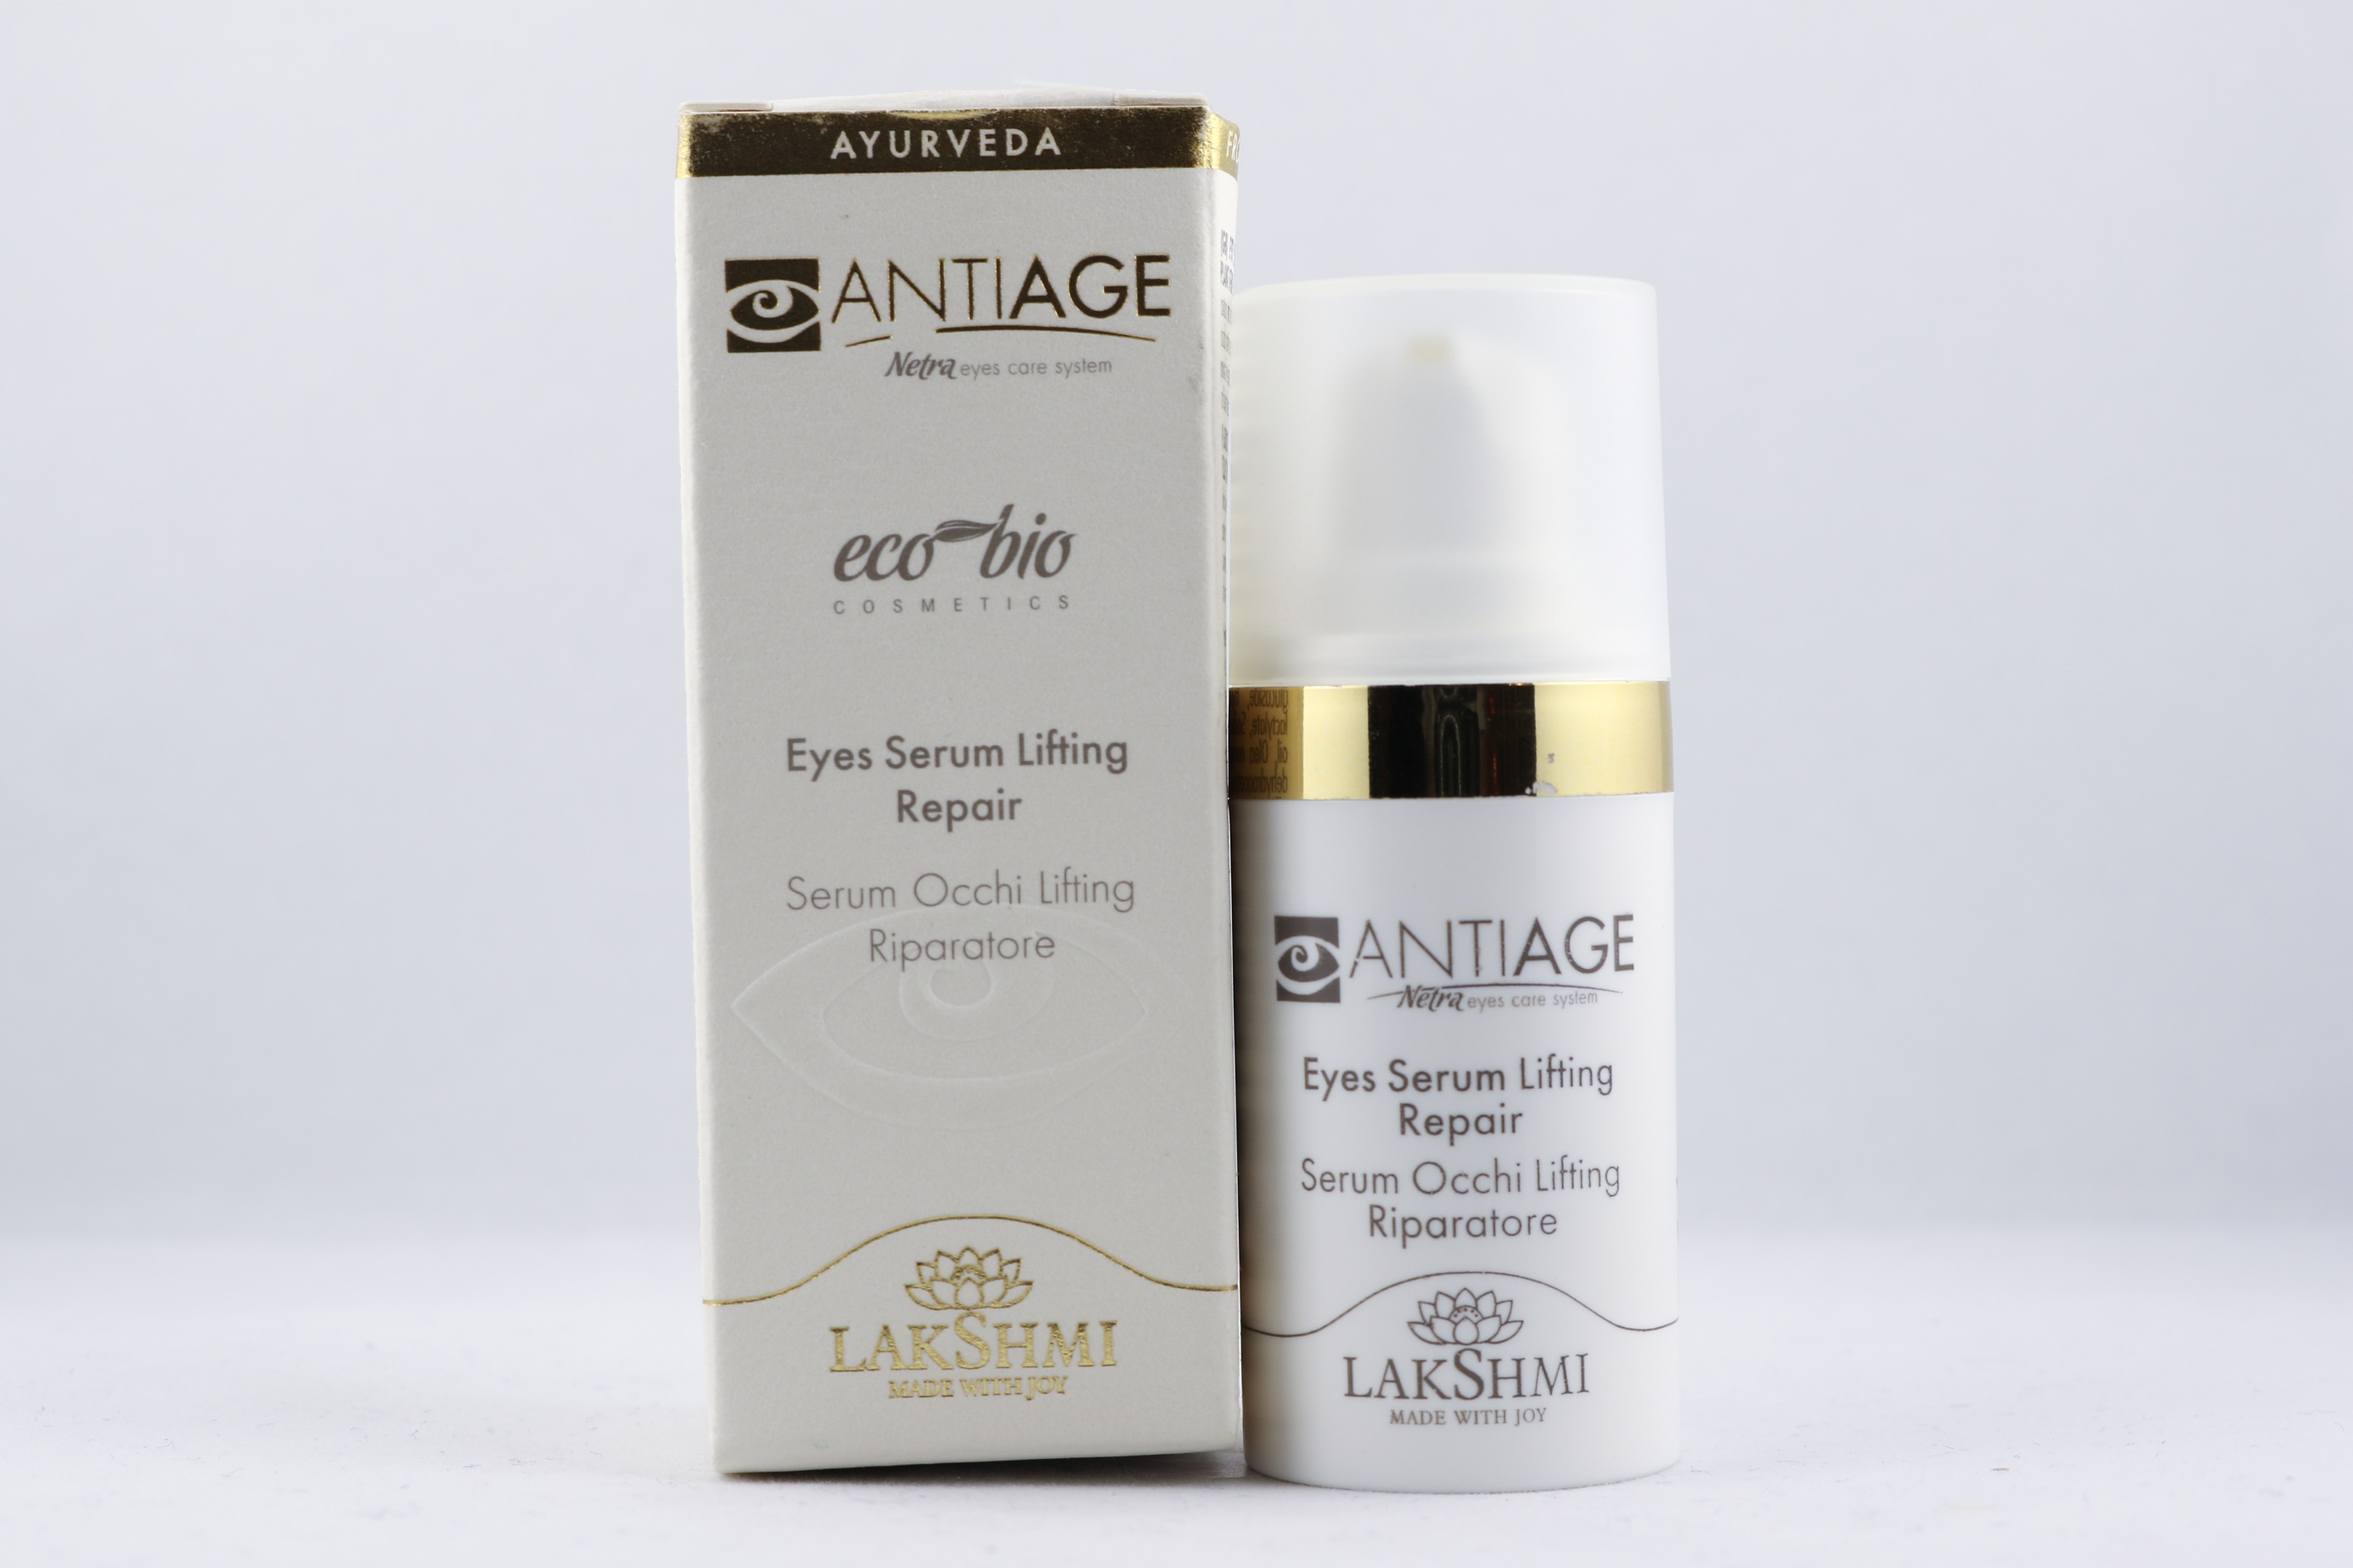 Anti-Age Eyes Serum Lifting Repair wellness ayurveda  halmstad sweden svensk hudvård